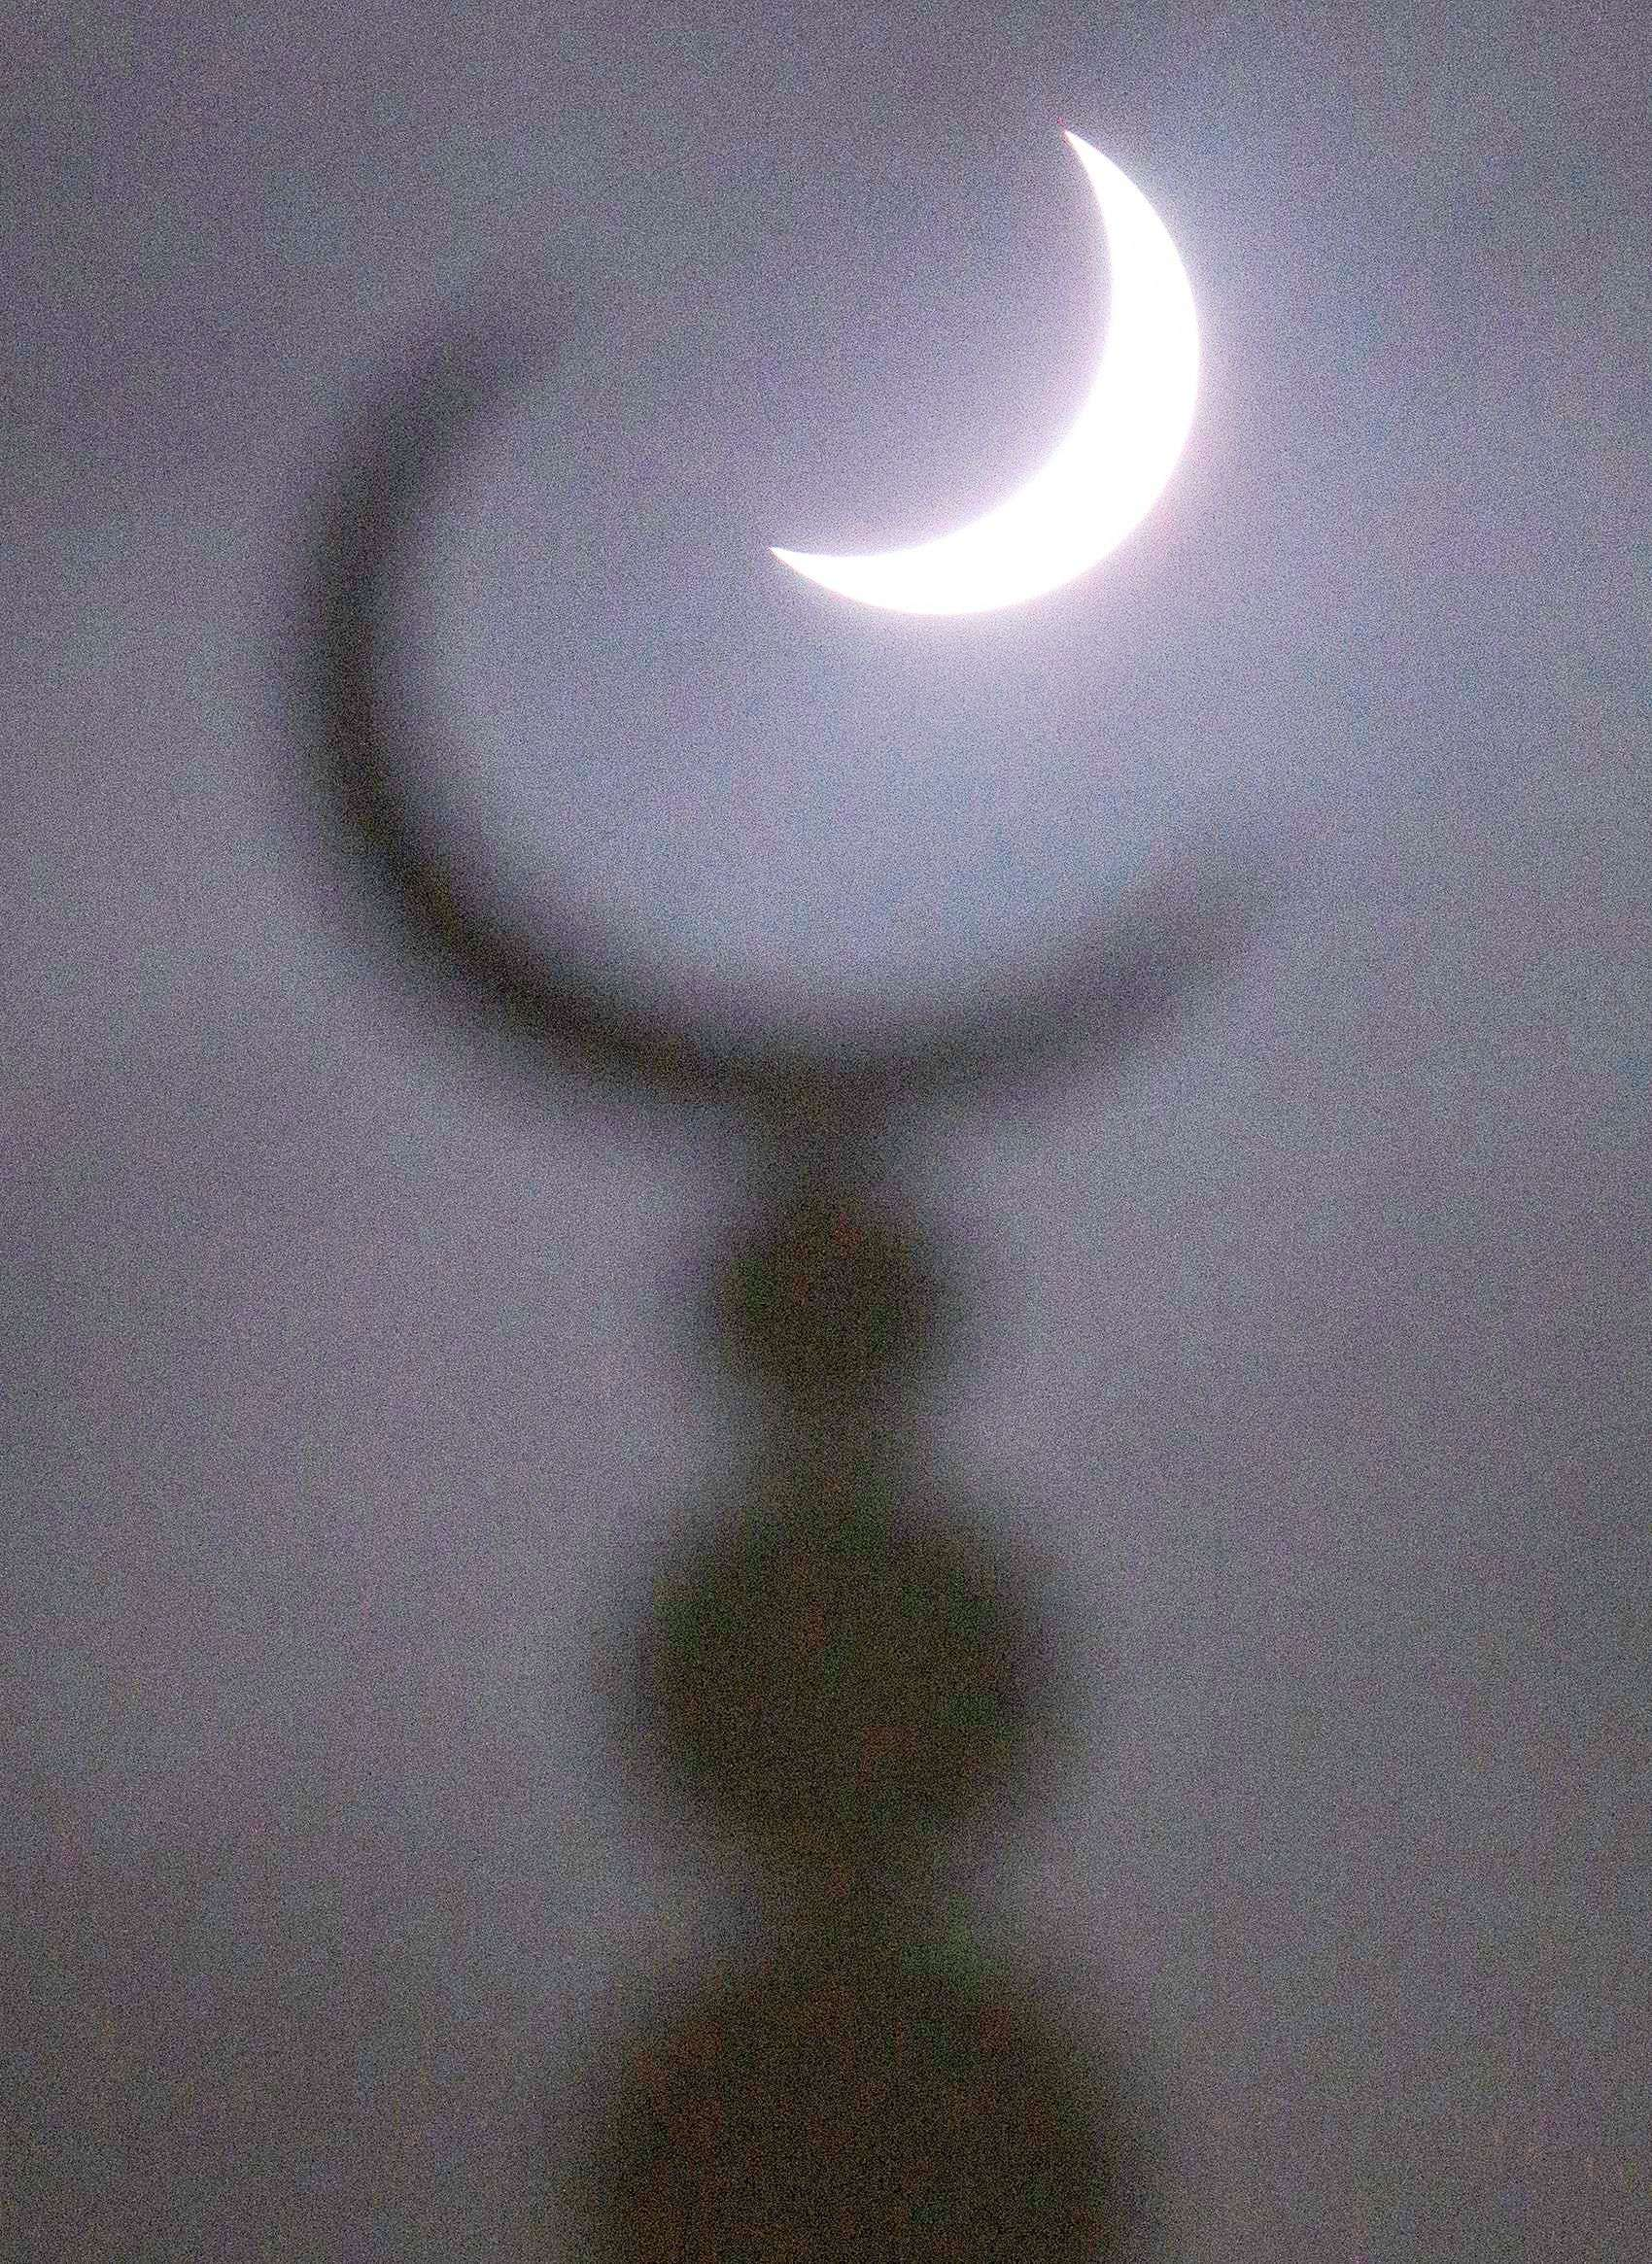 A partial solar eclipse in seen above a mosque in Oxford, central England. (REUTERS/Eddie Keogh)